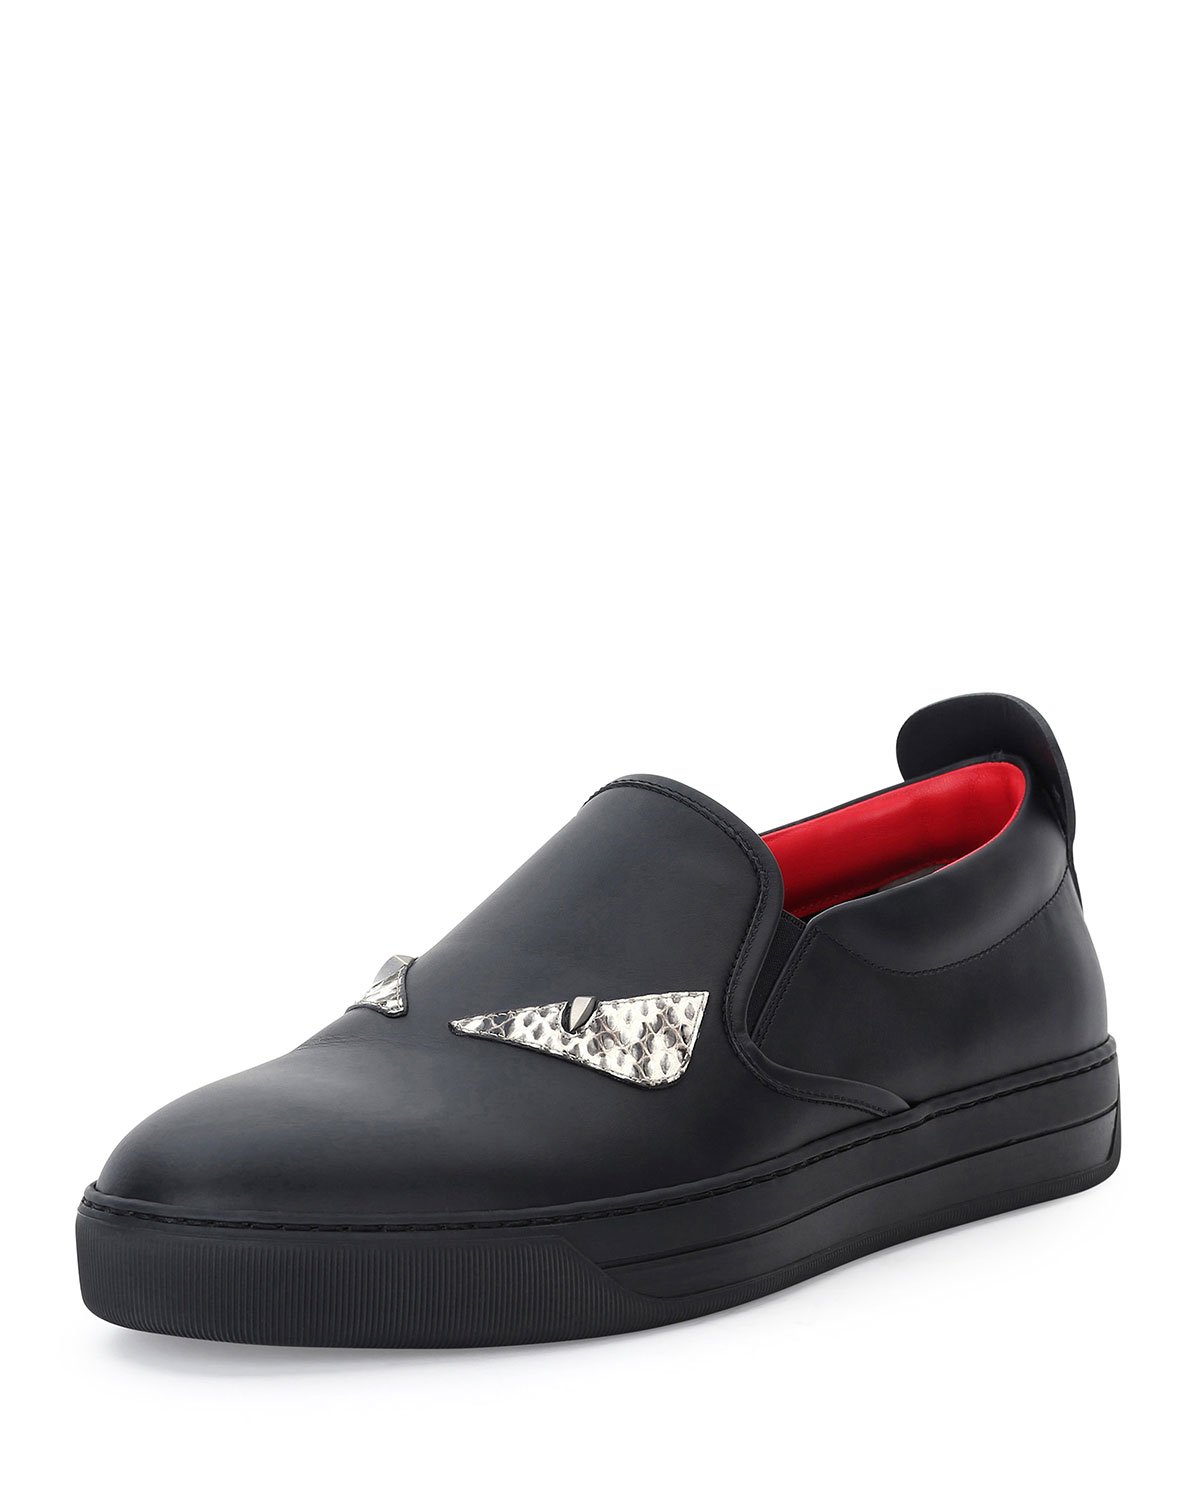 Fendi Men s Monster Eyes Leather Slip-On Sneakers 4ed592a4d